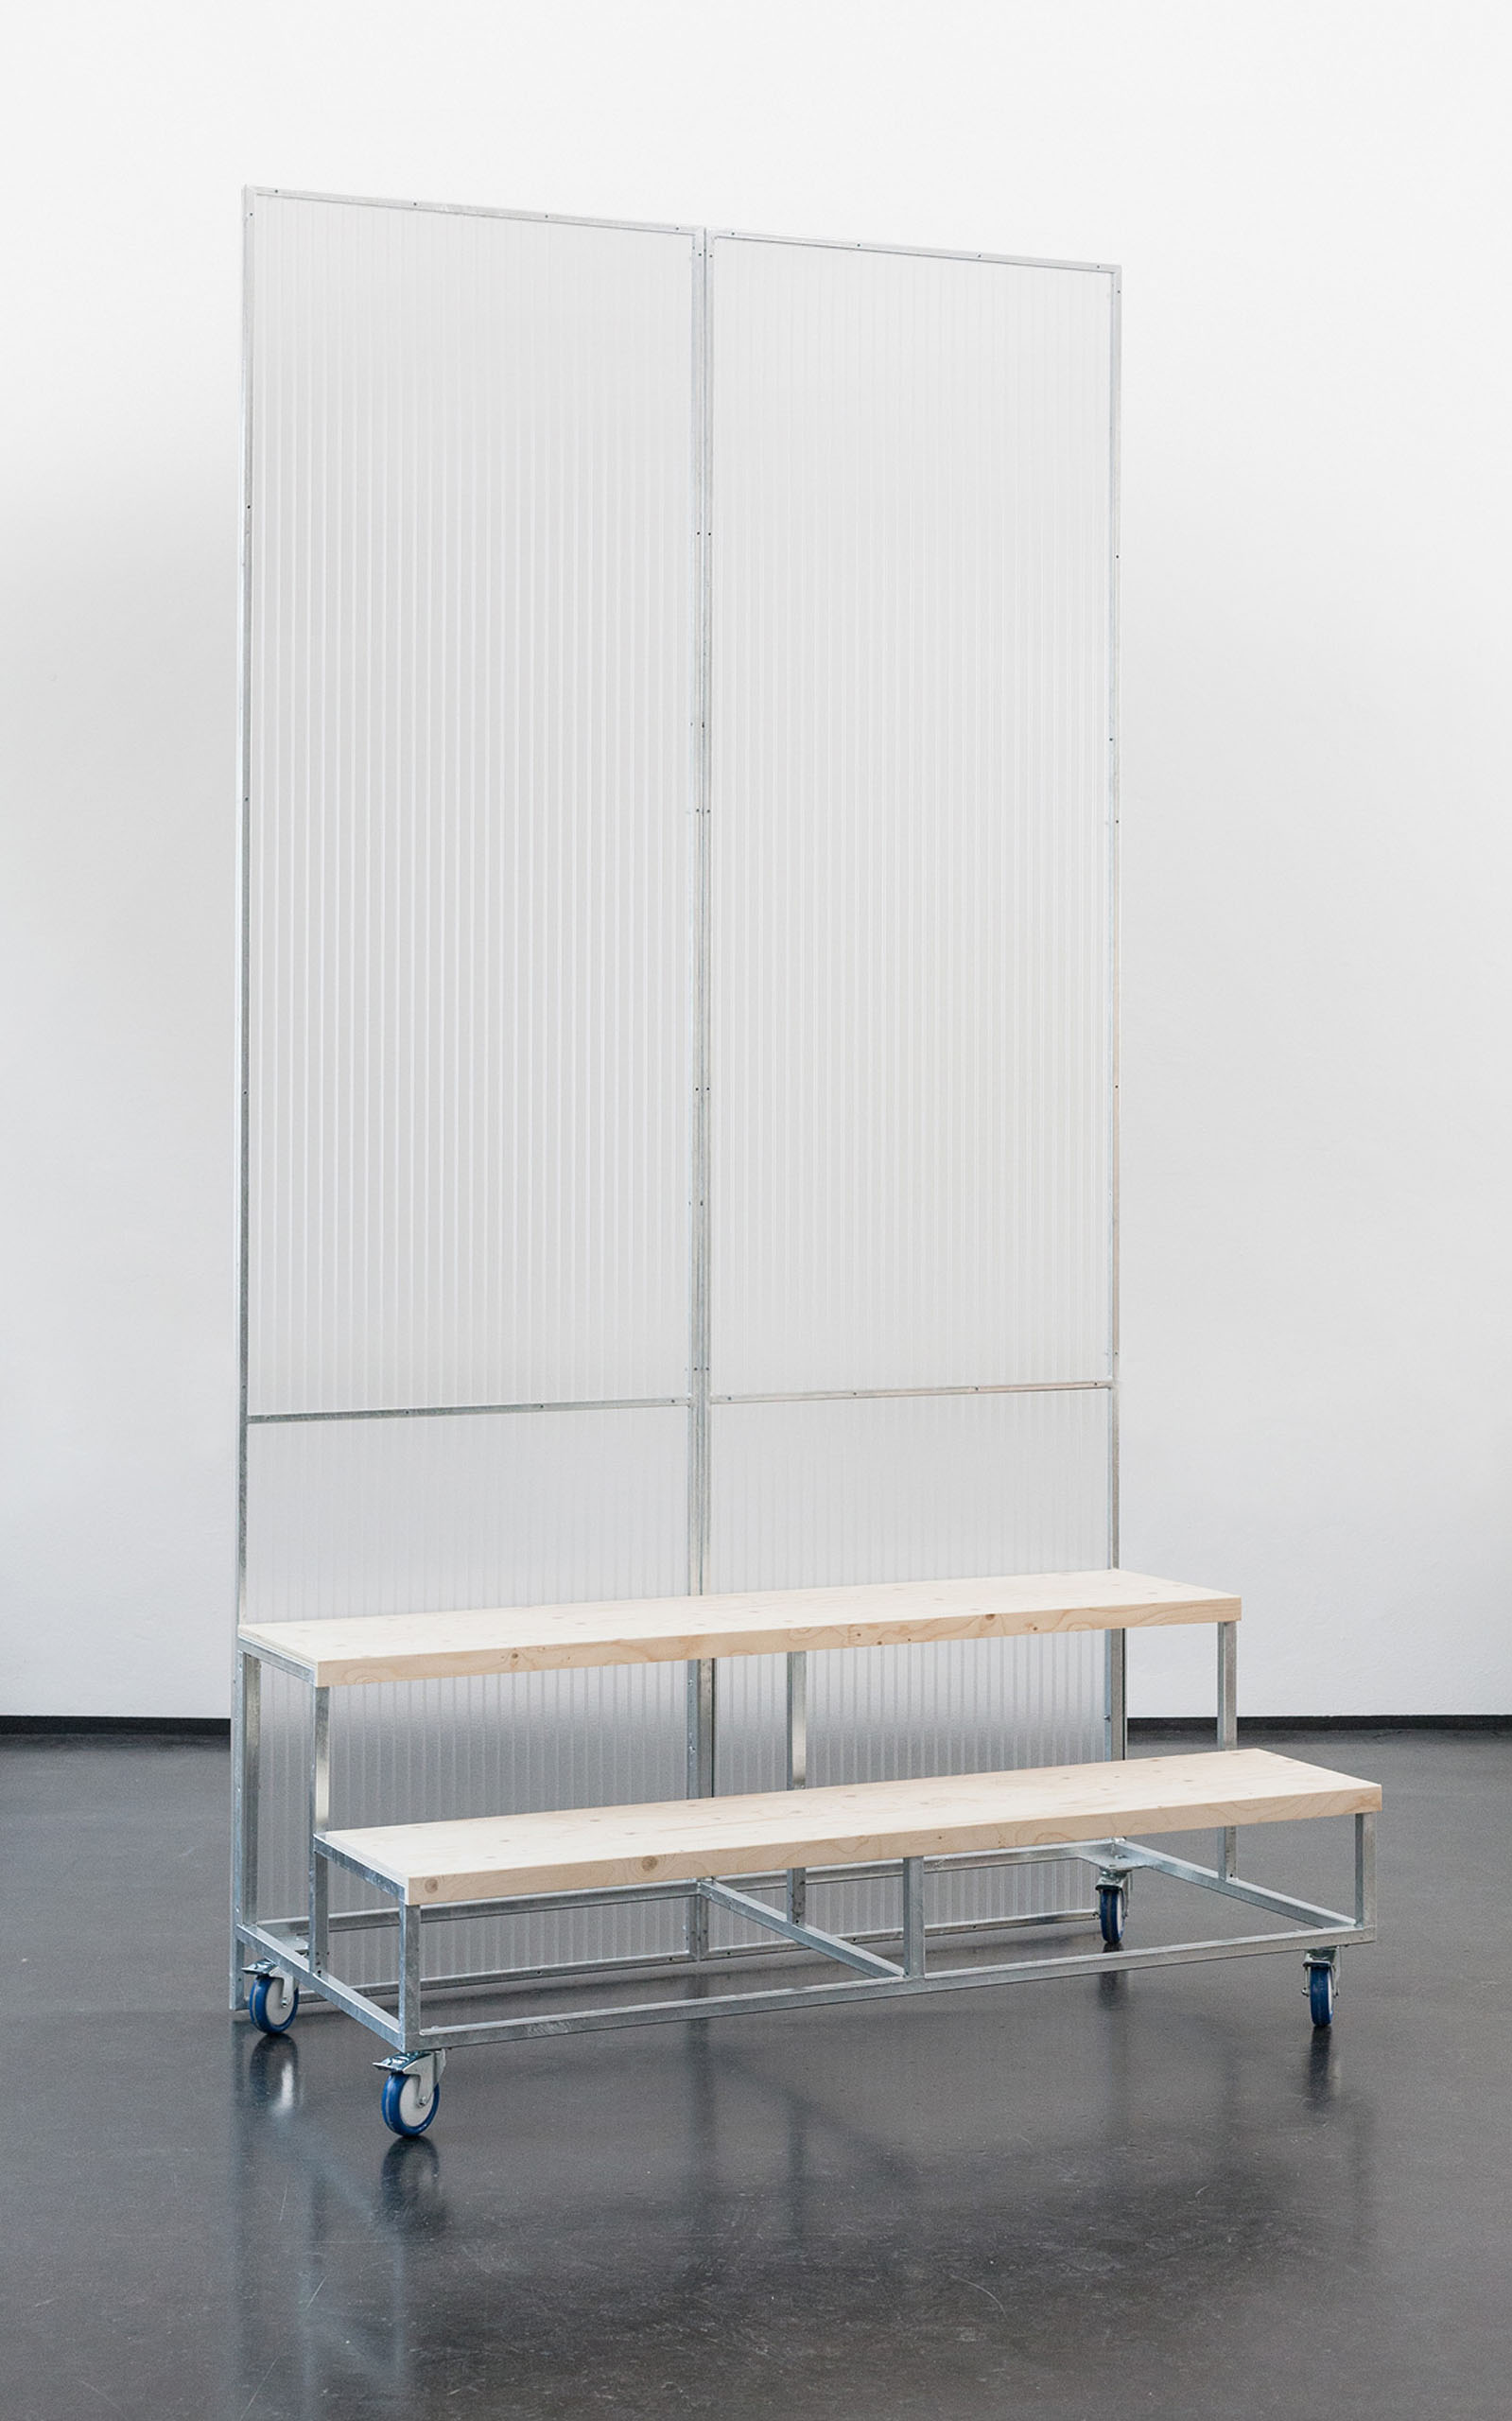 A mobile structure with seating element and translucent separee.